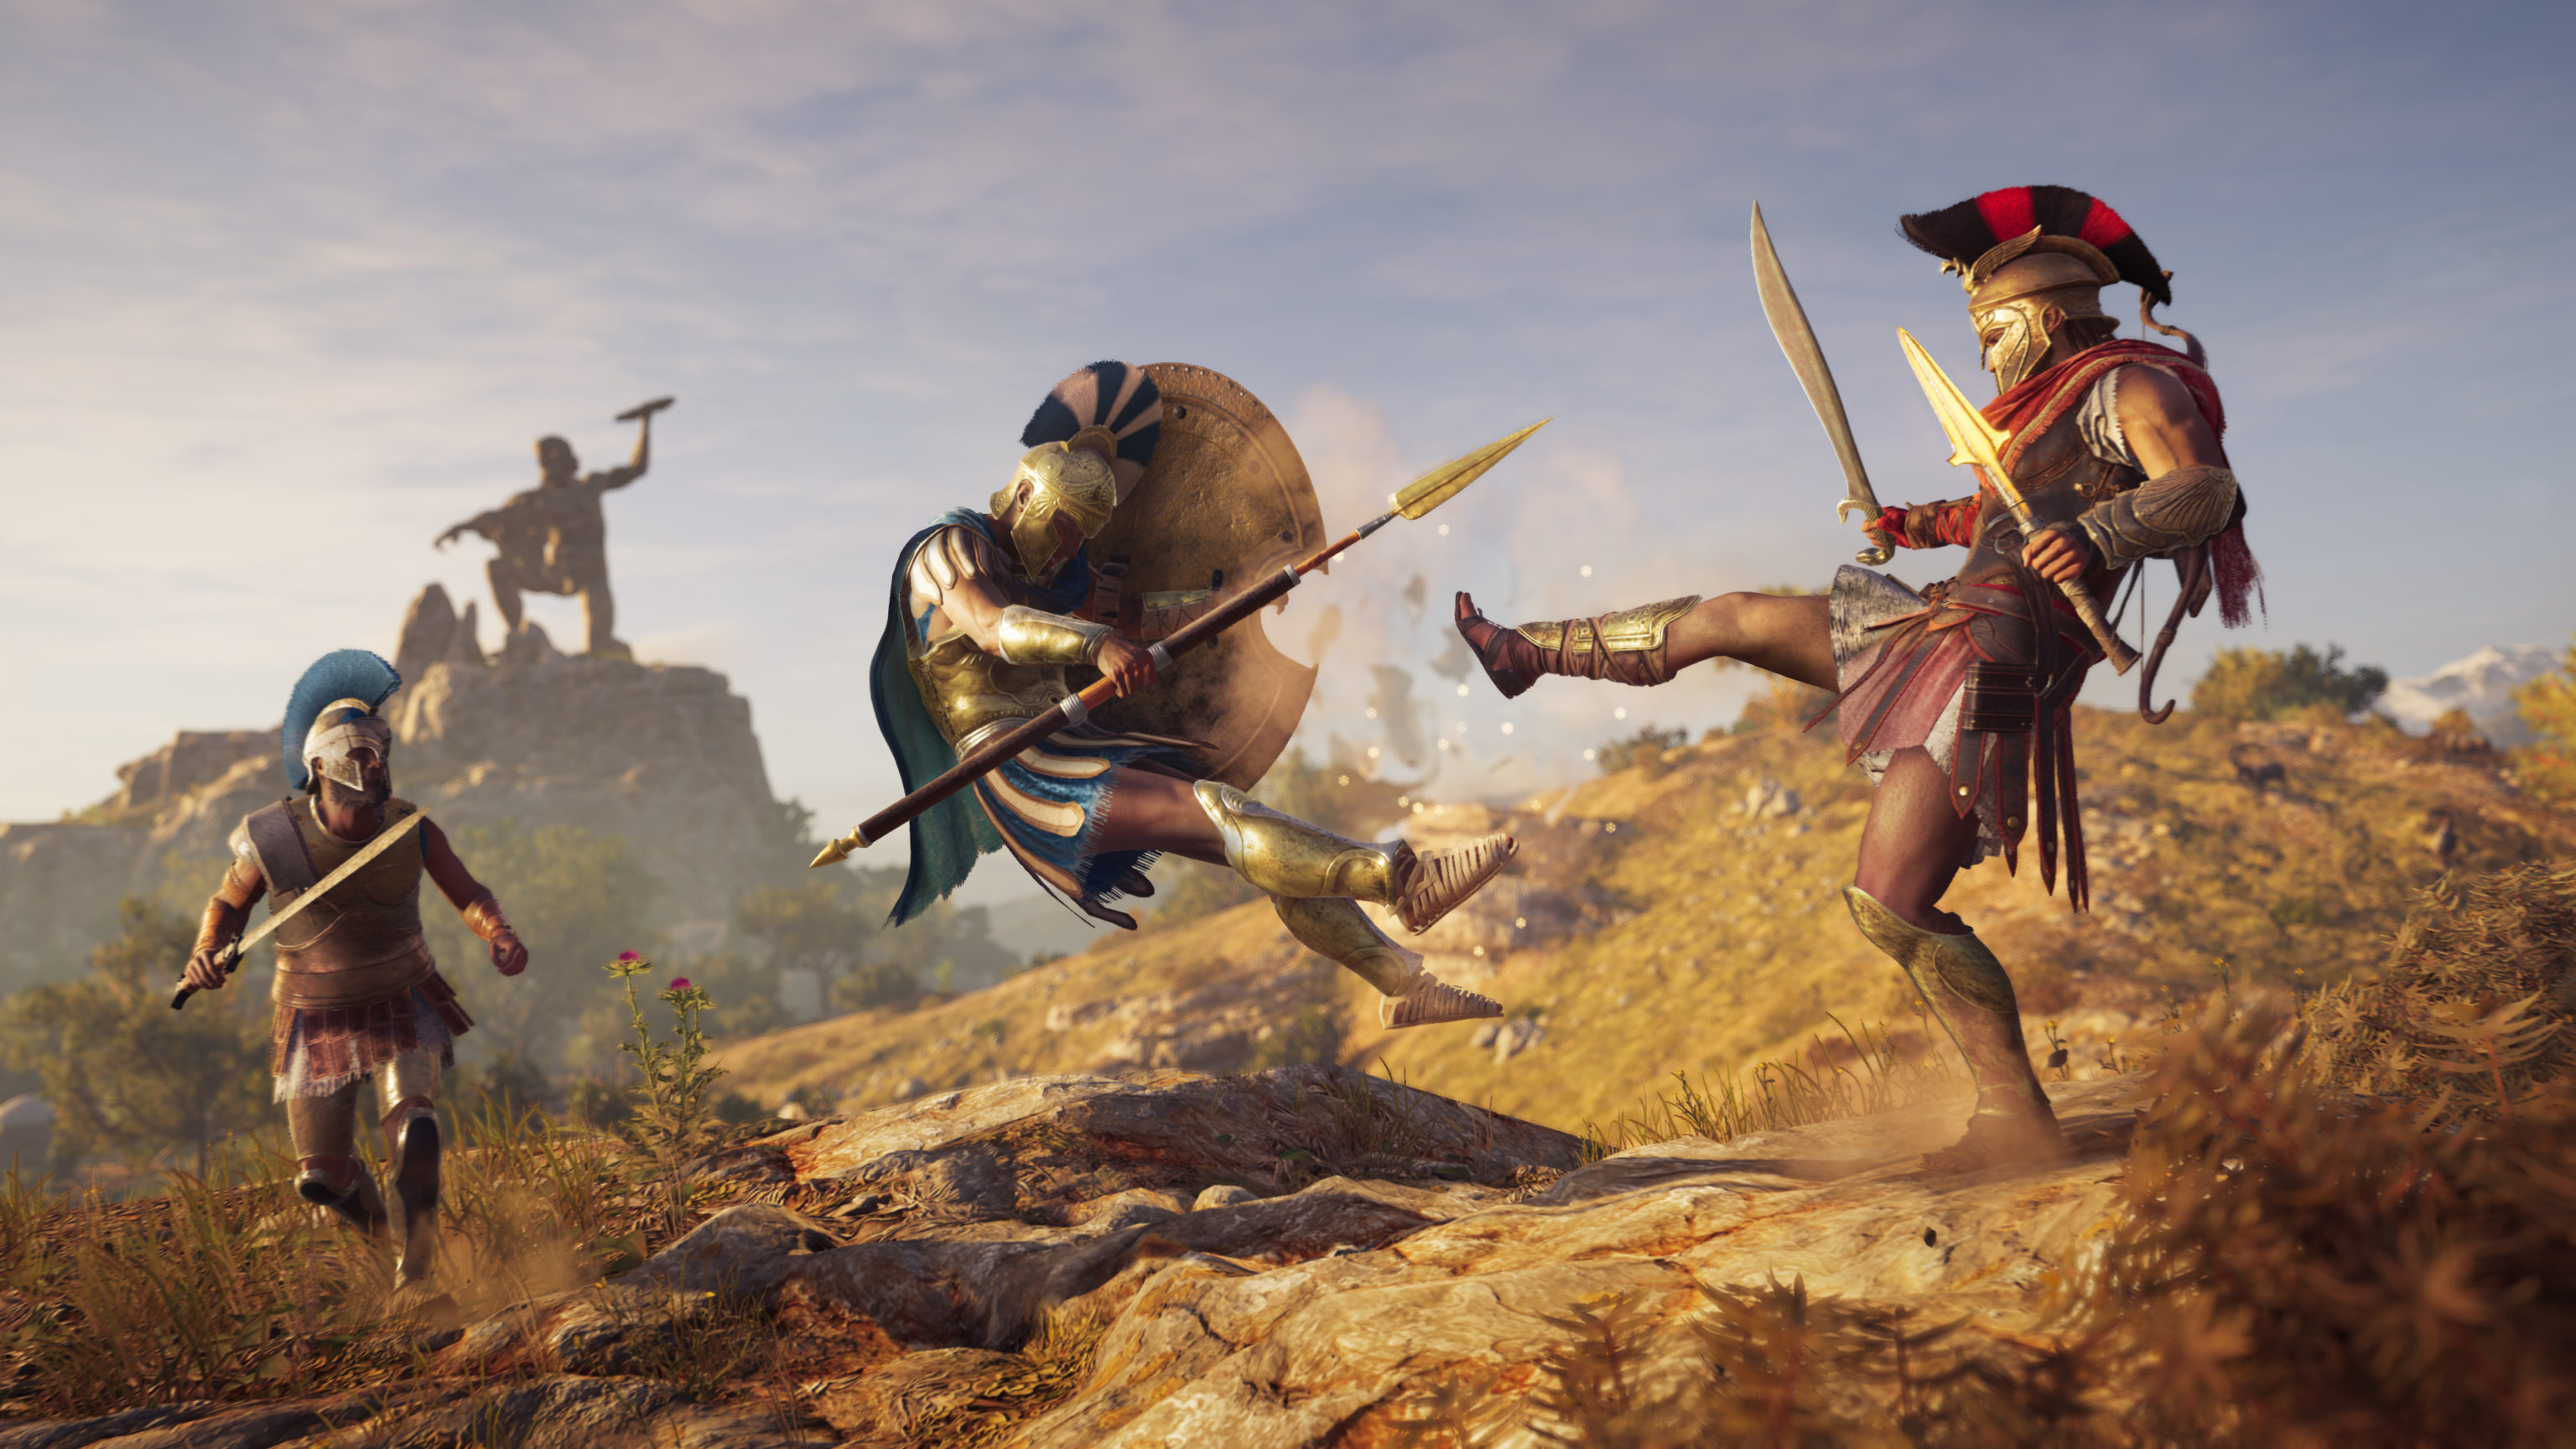 Assassin's Creed Odyssey (PS4, XBOX, PC): the game offers a variety of options for gamers who are hard of hearing, making combat much more accessible. Picture: Ubisoft / Can I Play That?